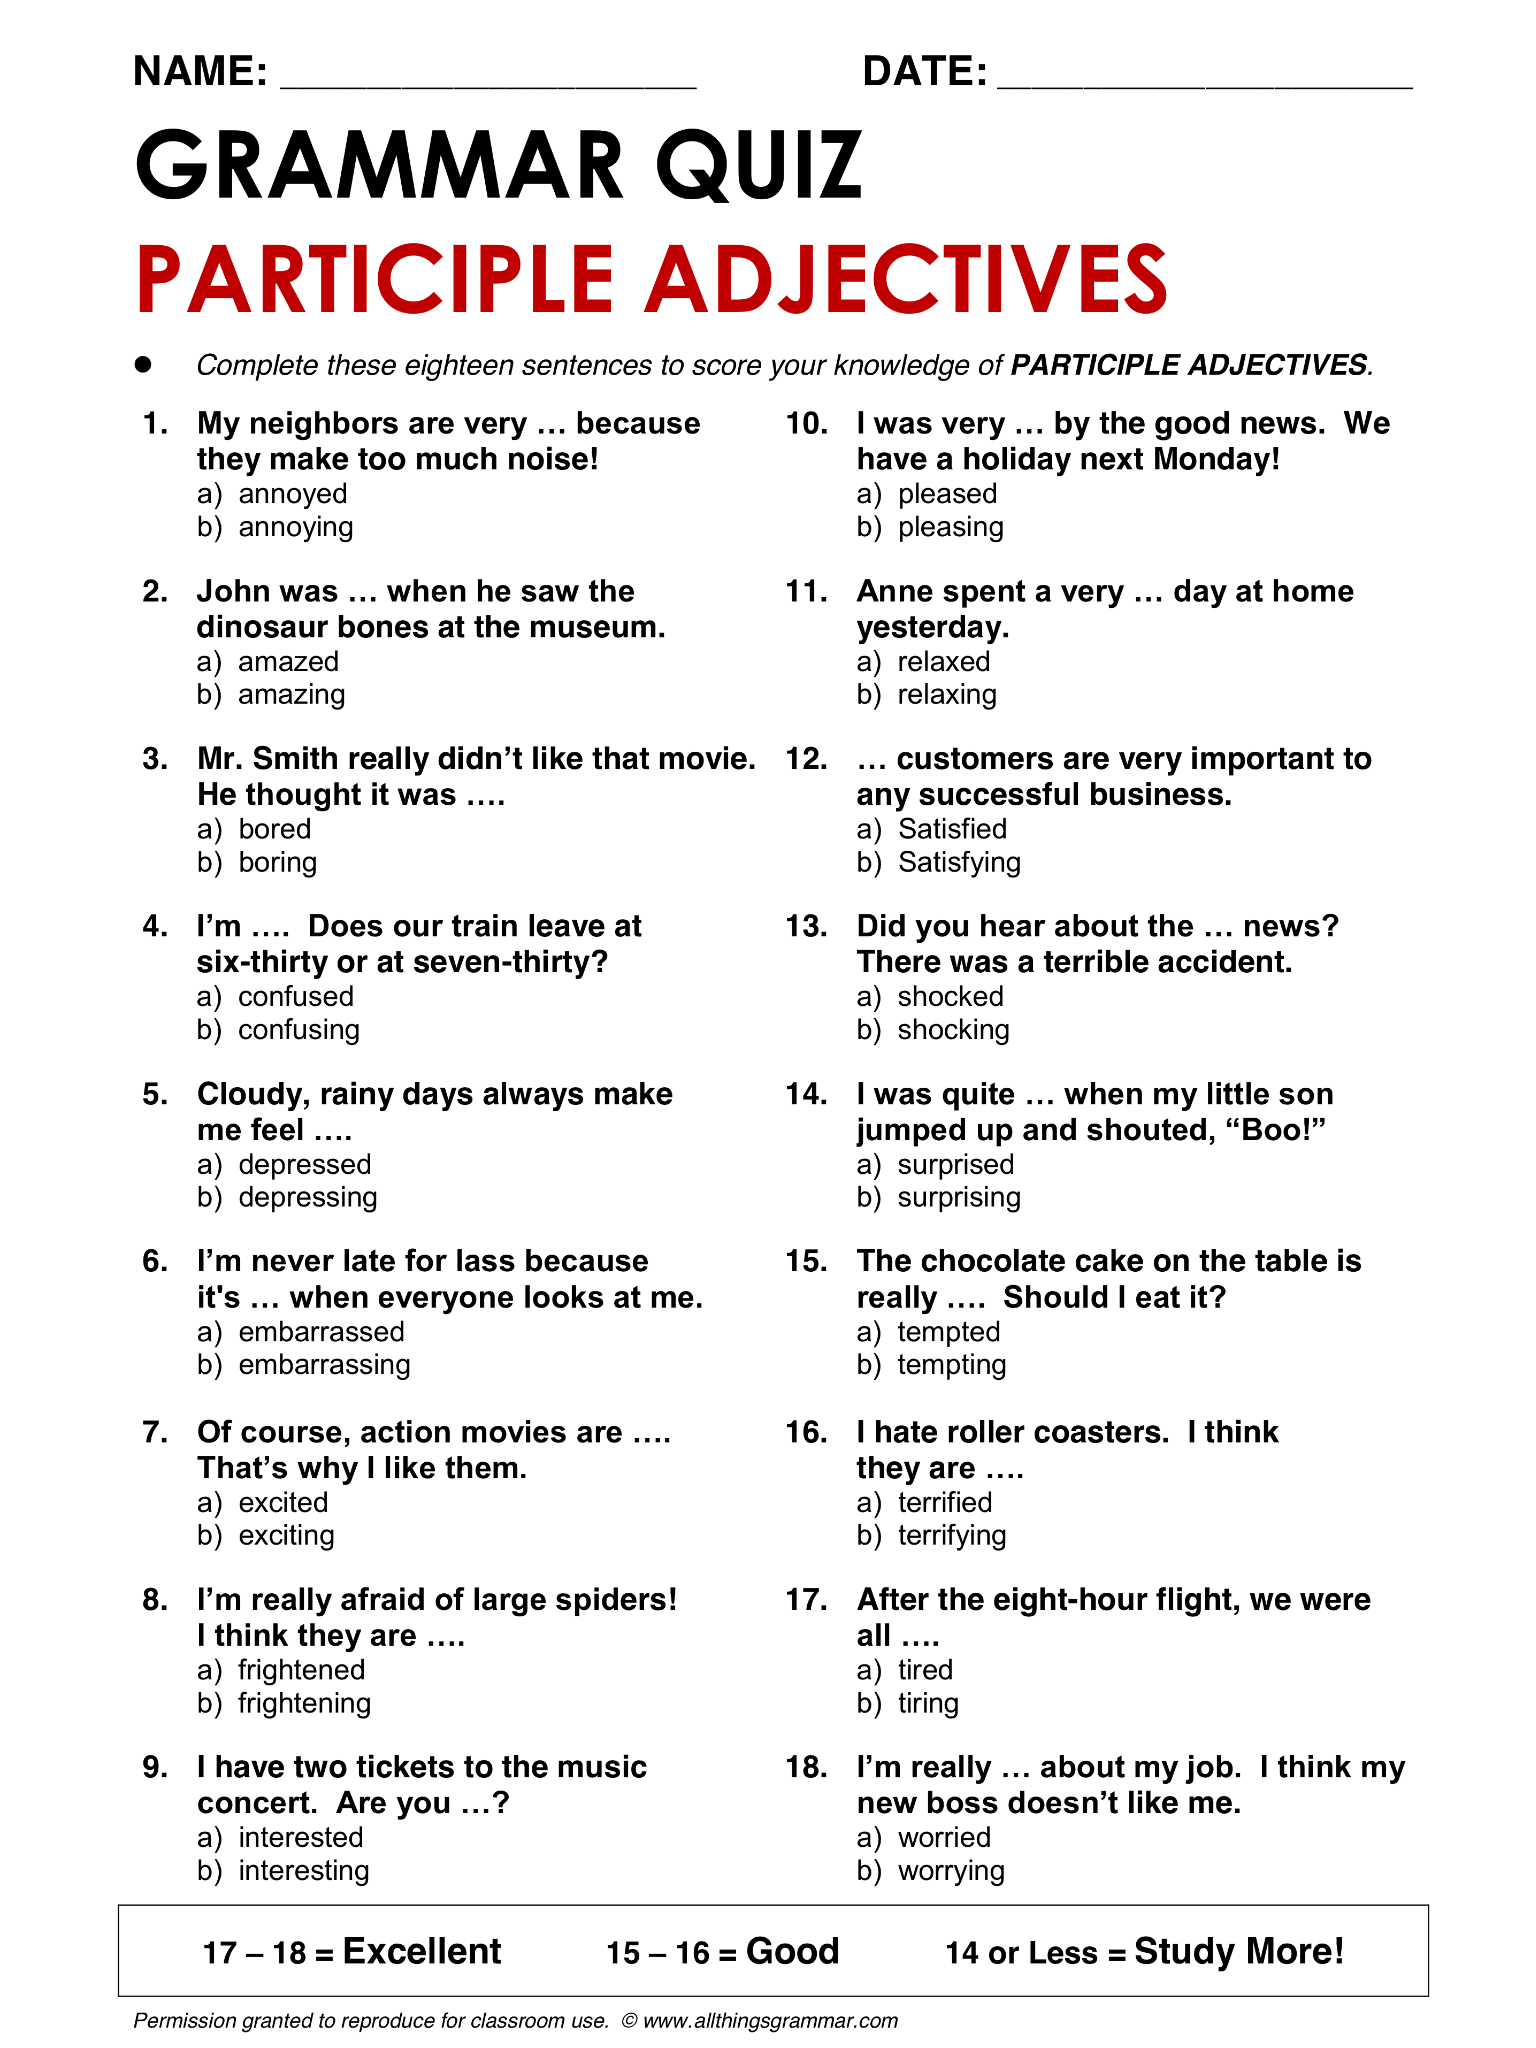 Worksheet On Adjectives Grade 7